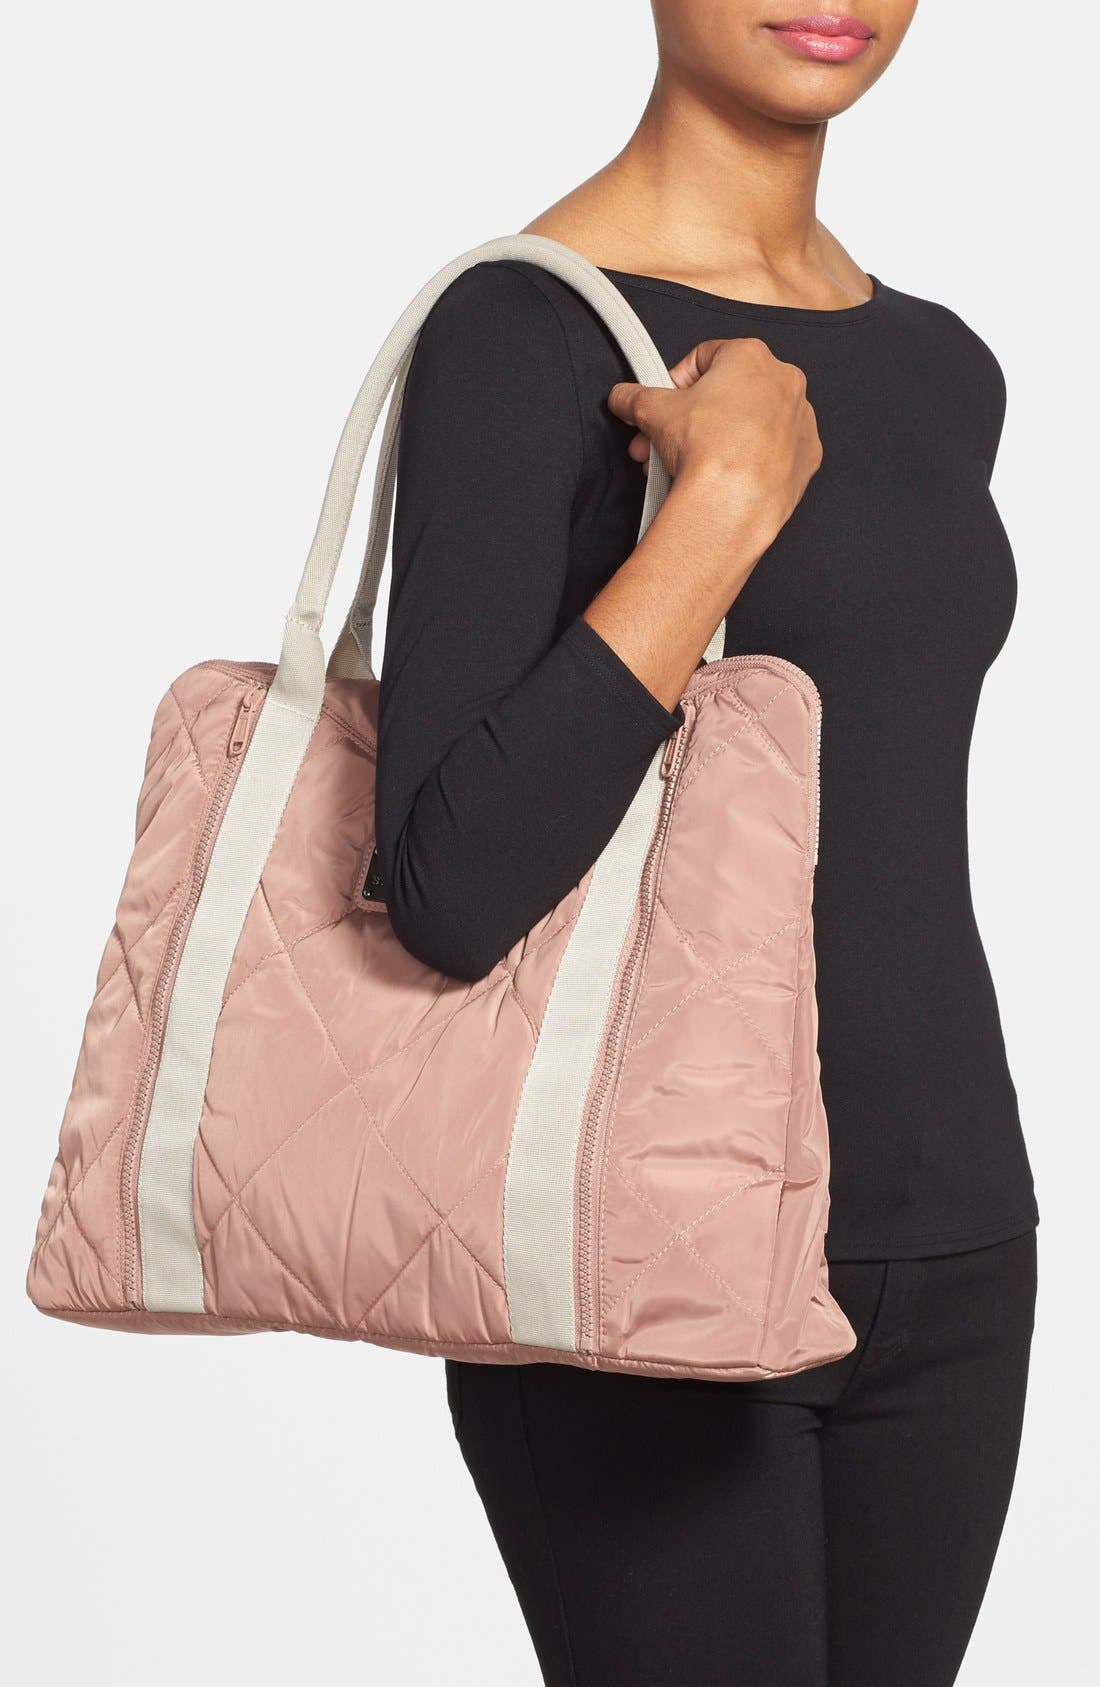 ADIDAS BY STELLA MCCARTNEY,                             Quilted Yoga Bag,                             Alternate thumbnail 2, color,                             250